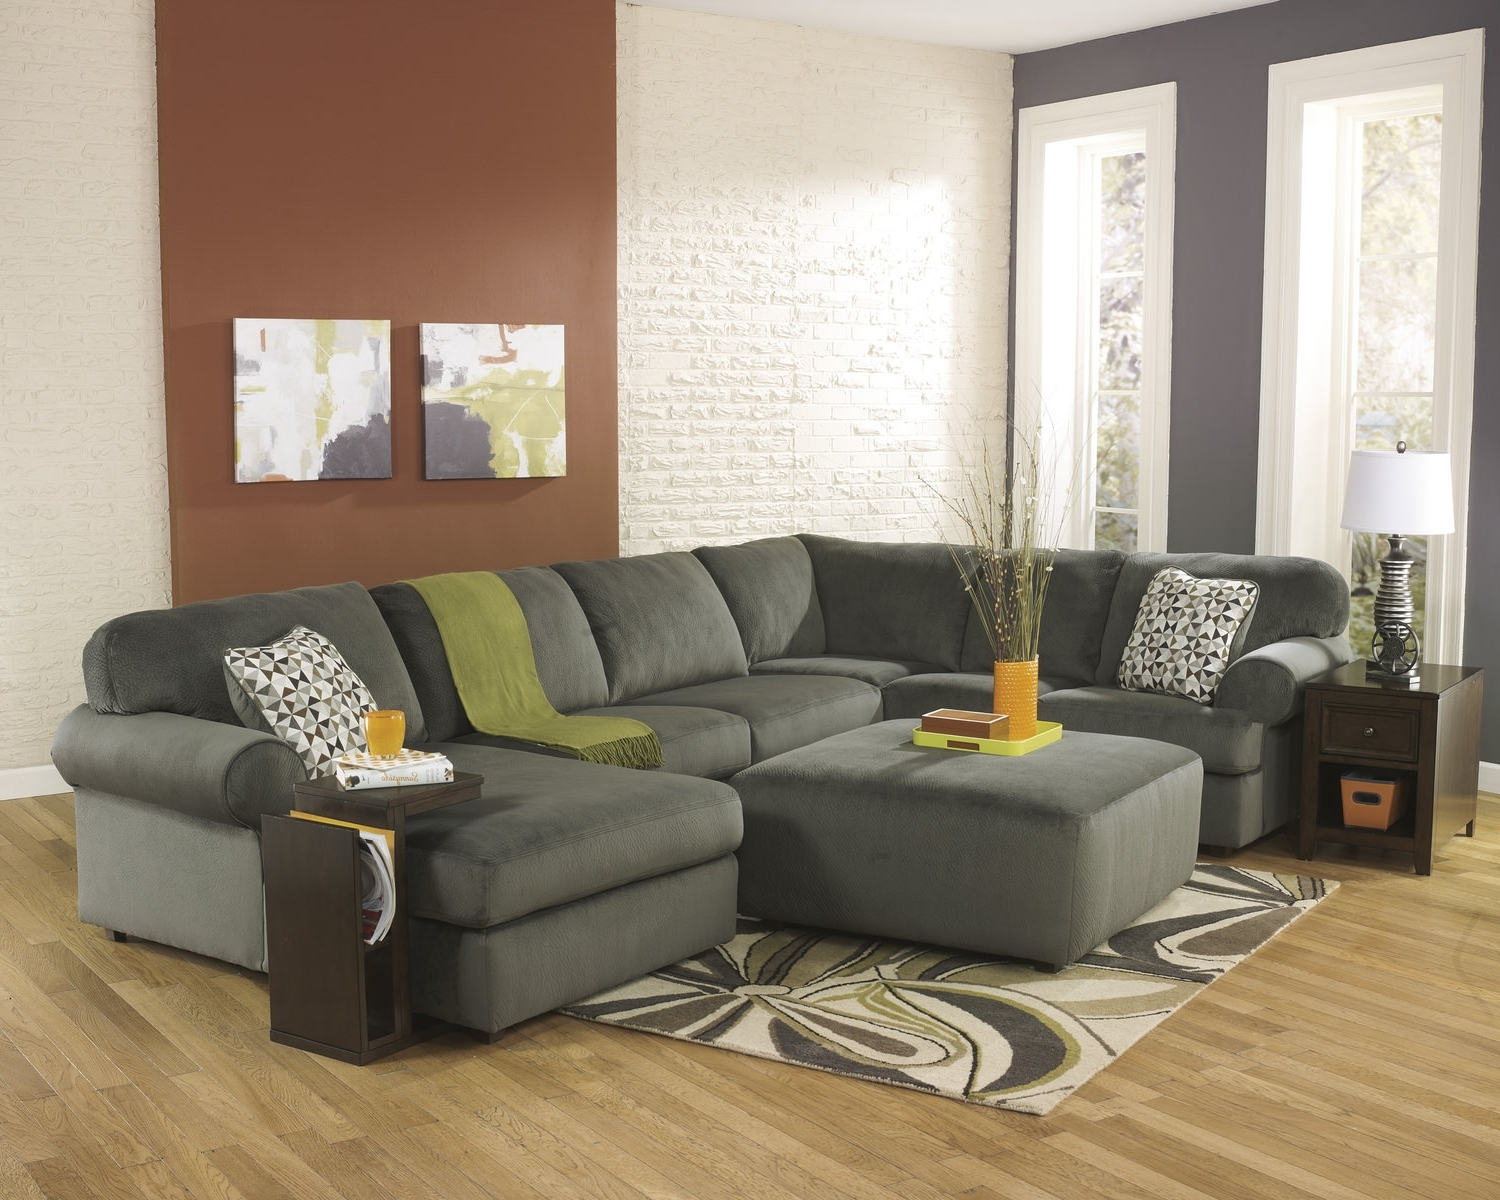 Famous Dock 86 Sectional Sofas Regarding Coach 3 Piece Sectional (View 9 of 15)